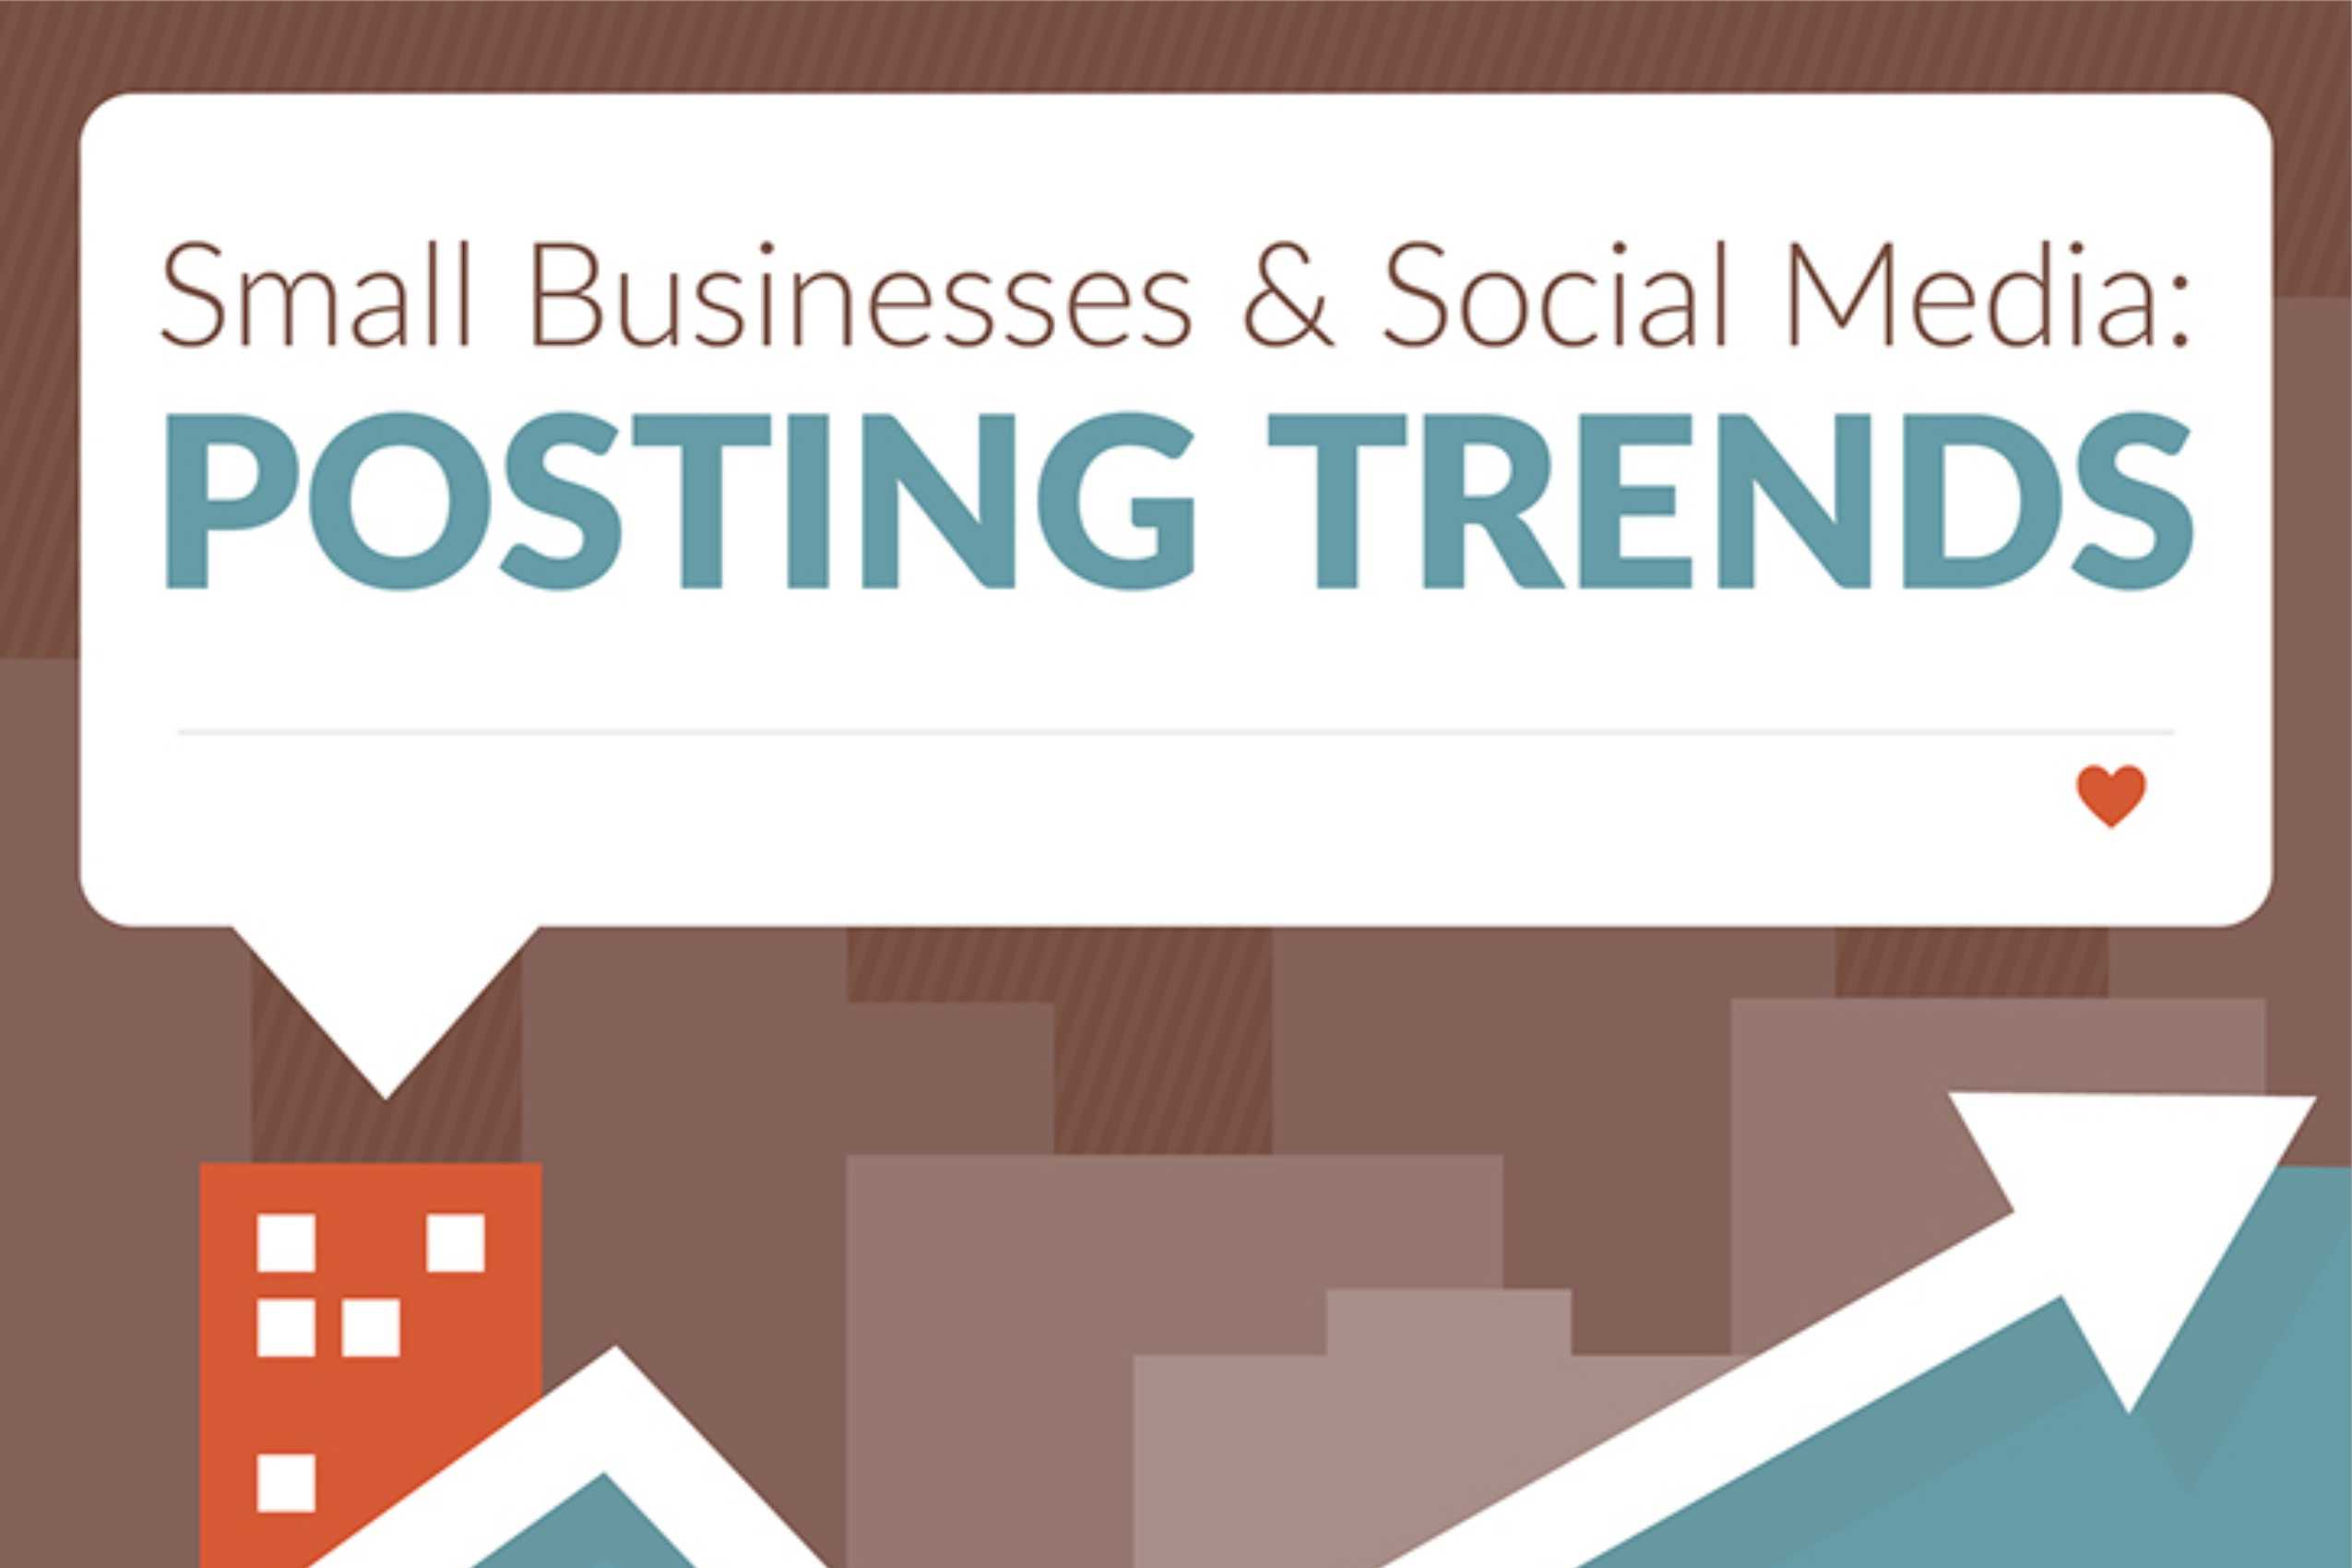 Small Business & Social Media_ 2018 Posting Trends (infographic)